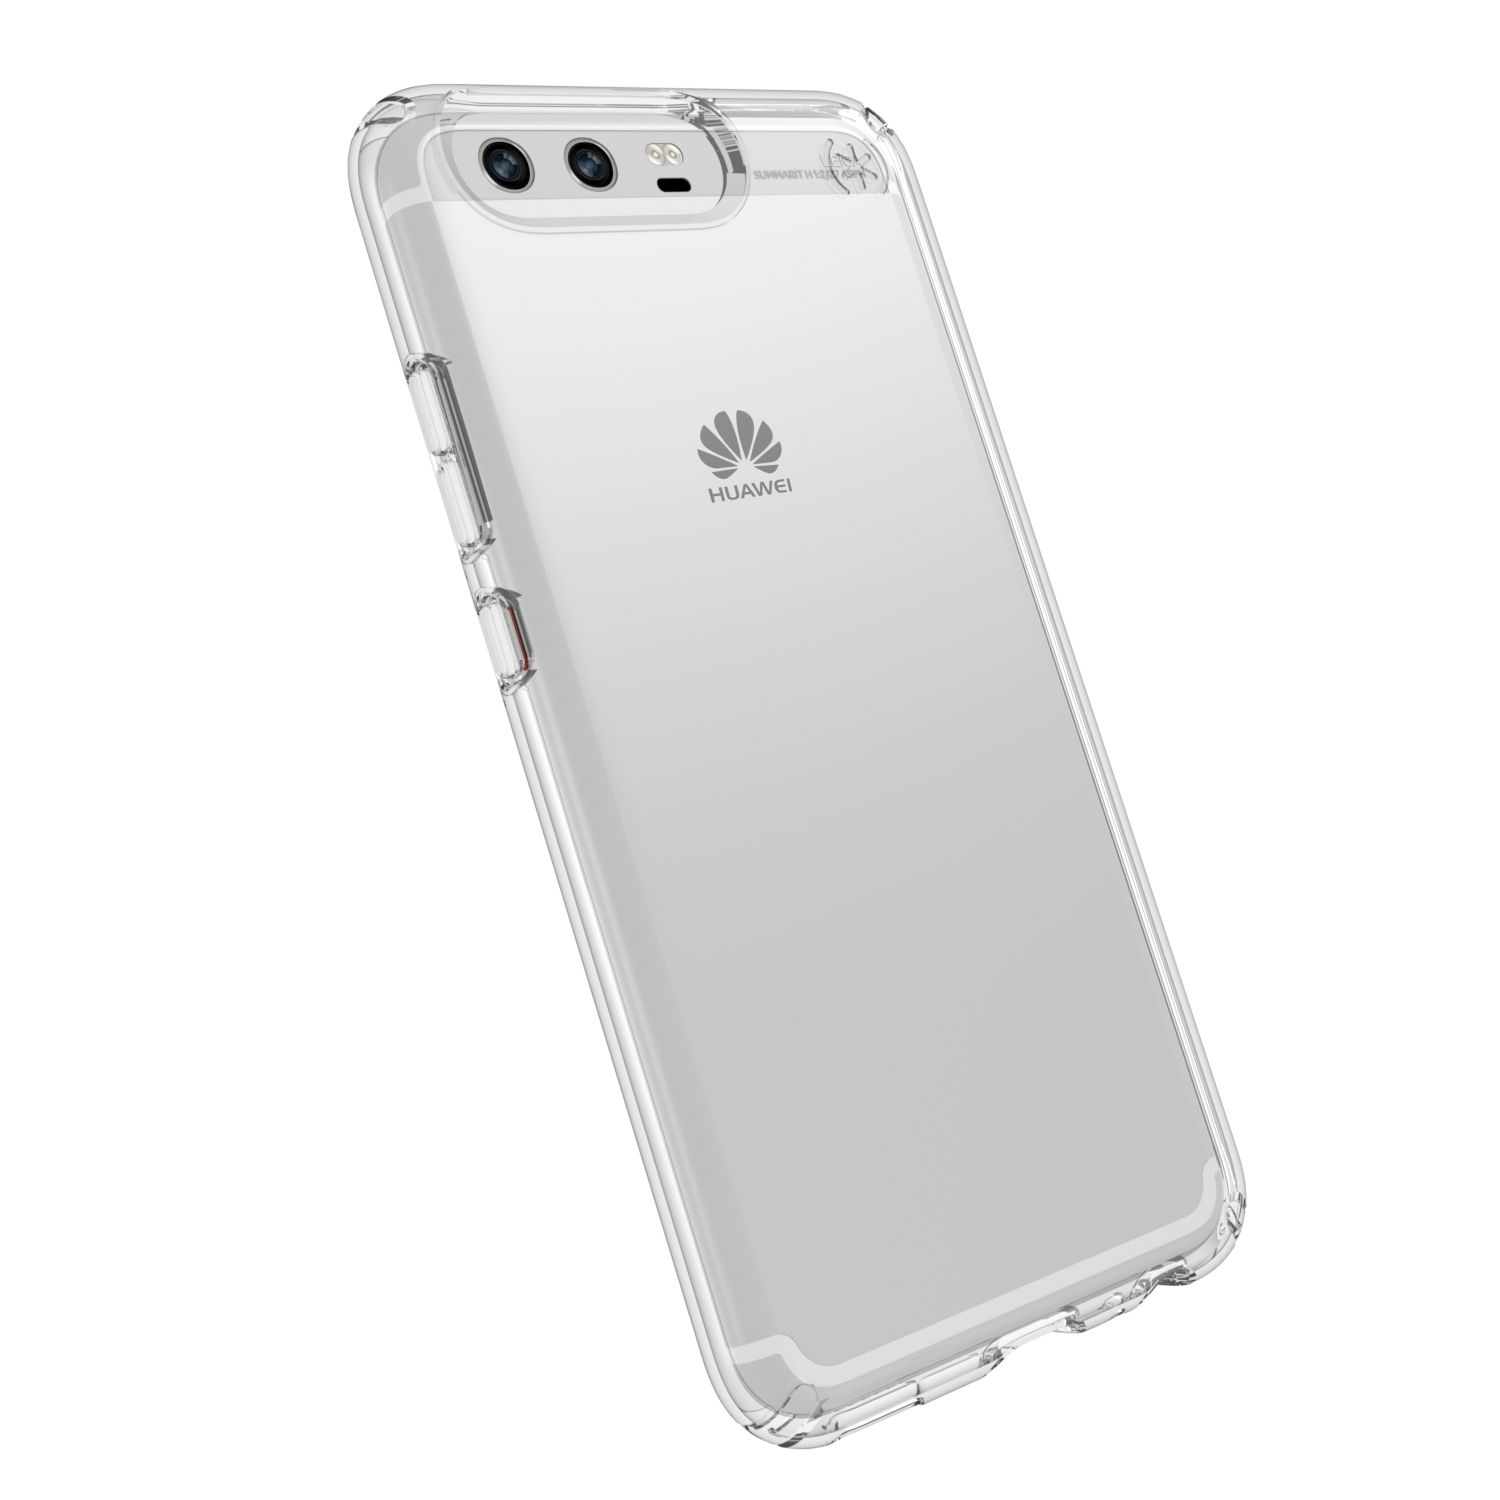 Search and compare best prices of Speck Presidio Clear Huawei P10 Plus Cases Clear in UK